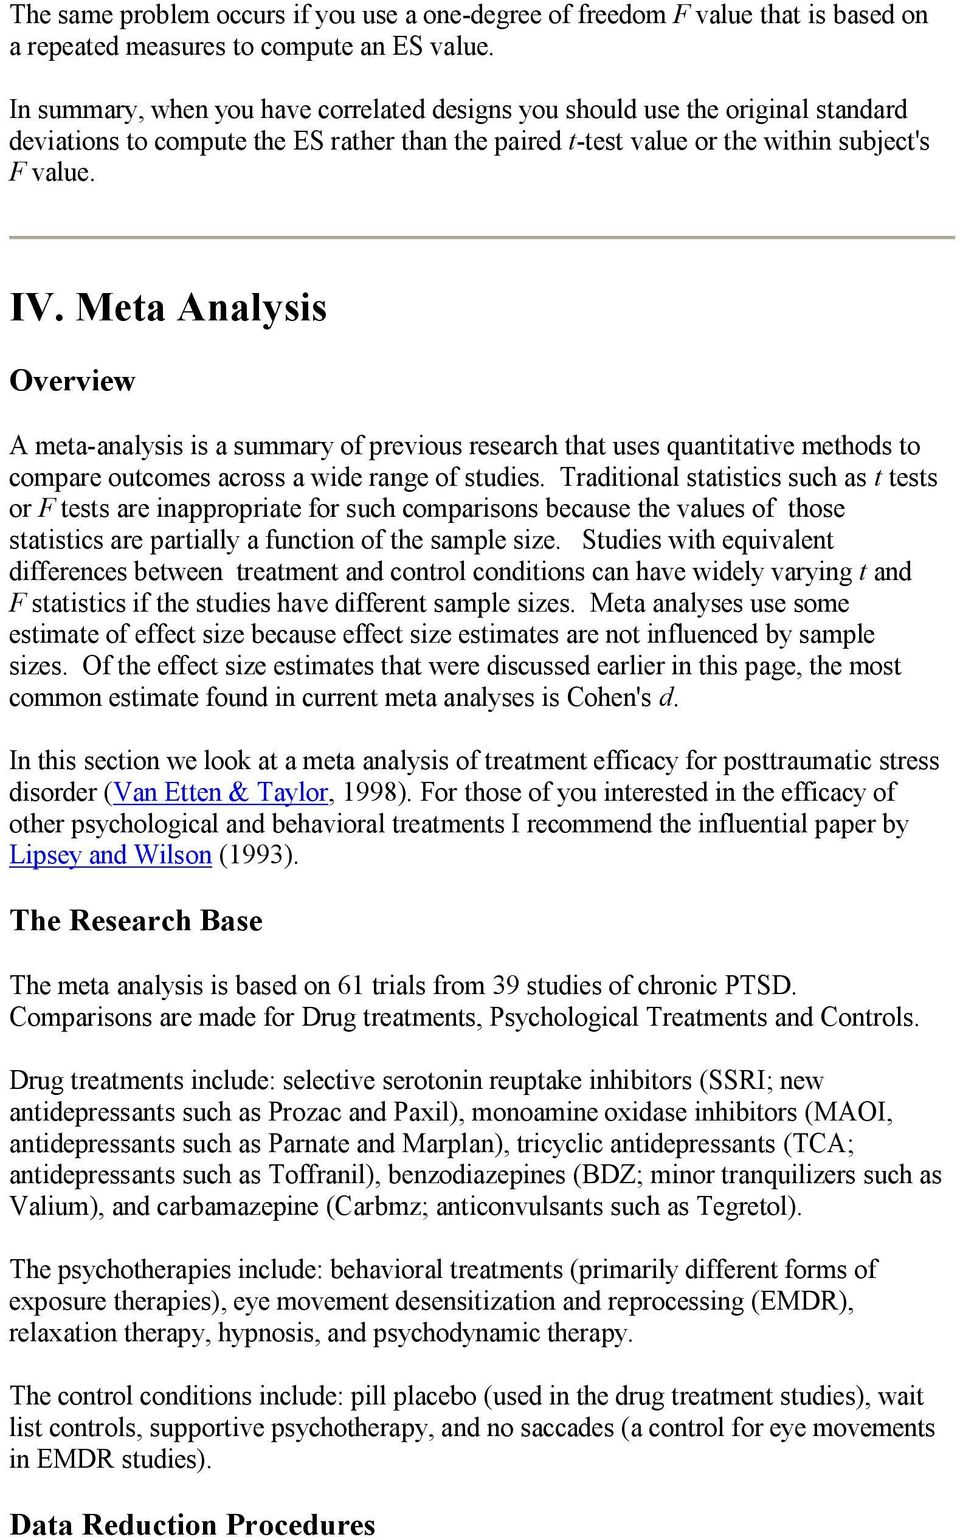 Meta Analysis Overview A meta-analysis is a summary of previous research that uses quantitative methods to compare outcomes across a wide range of studies.